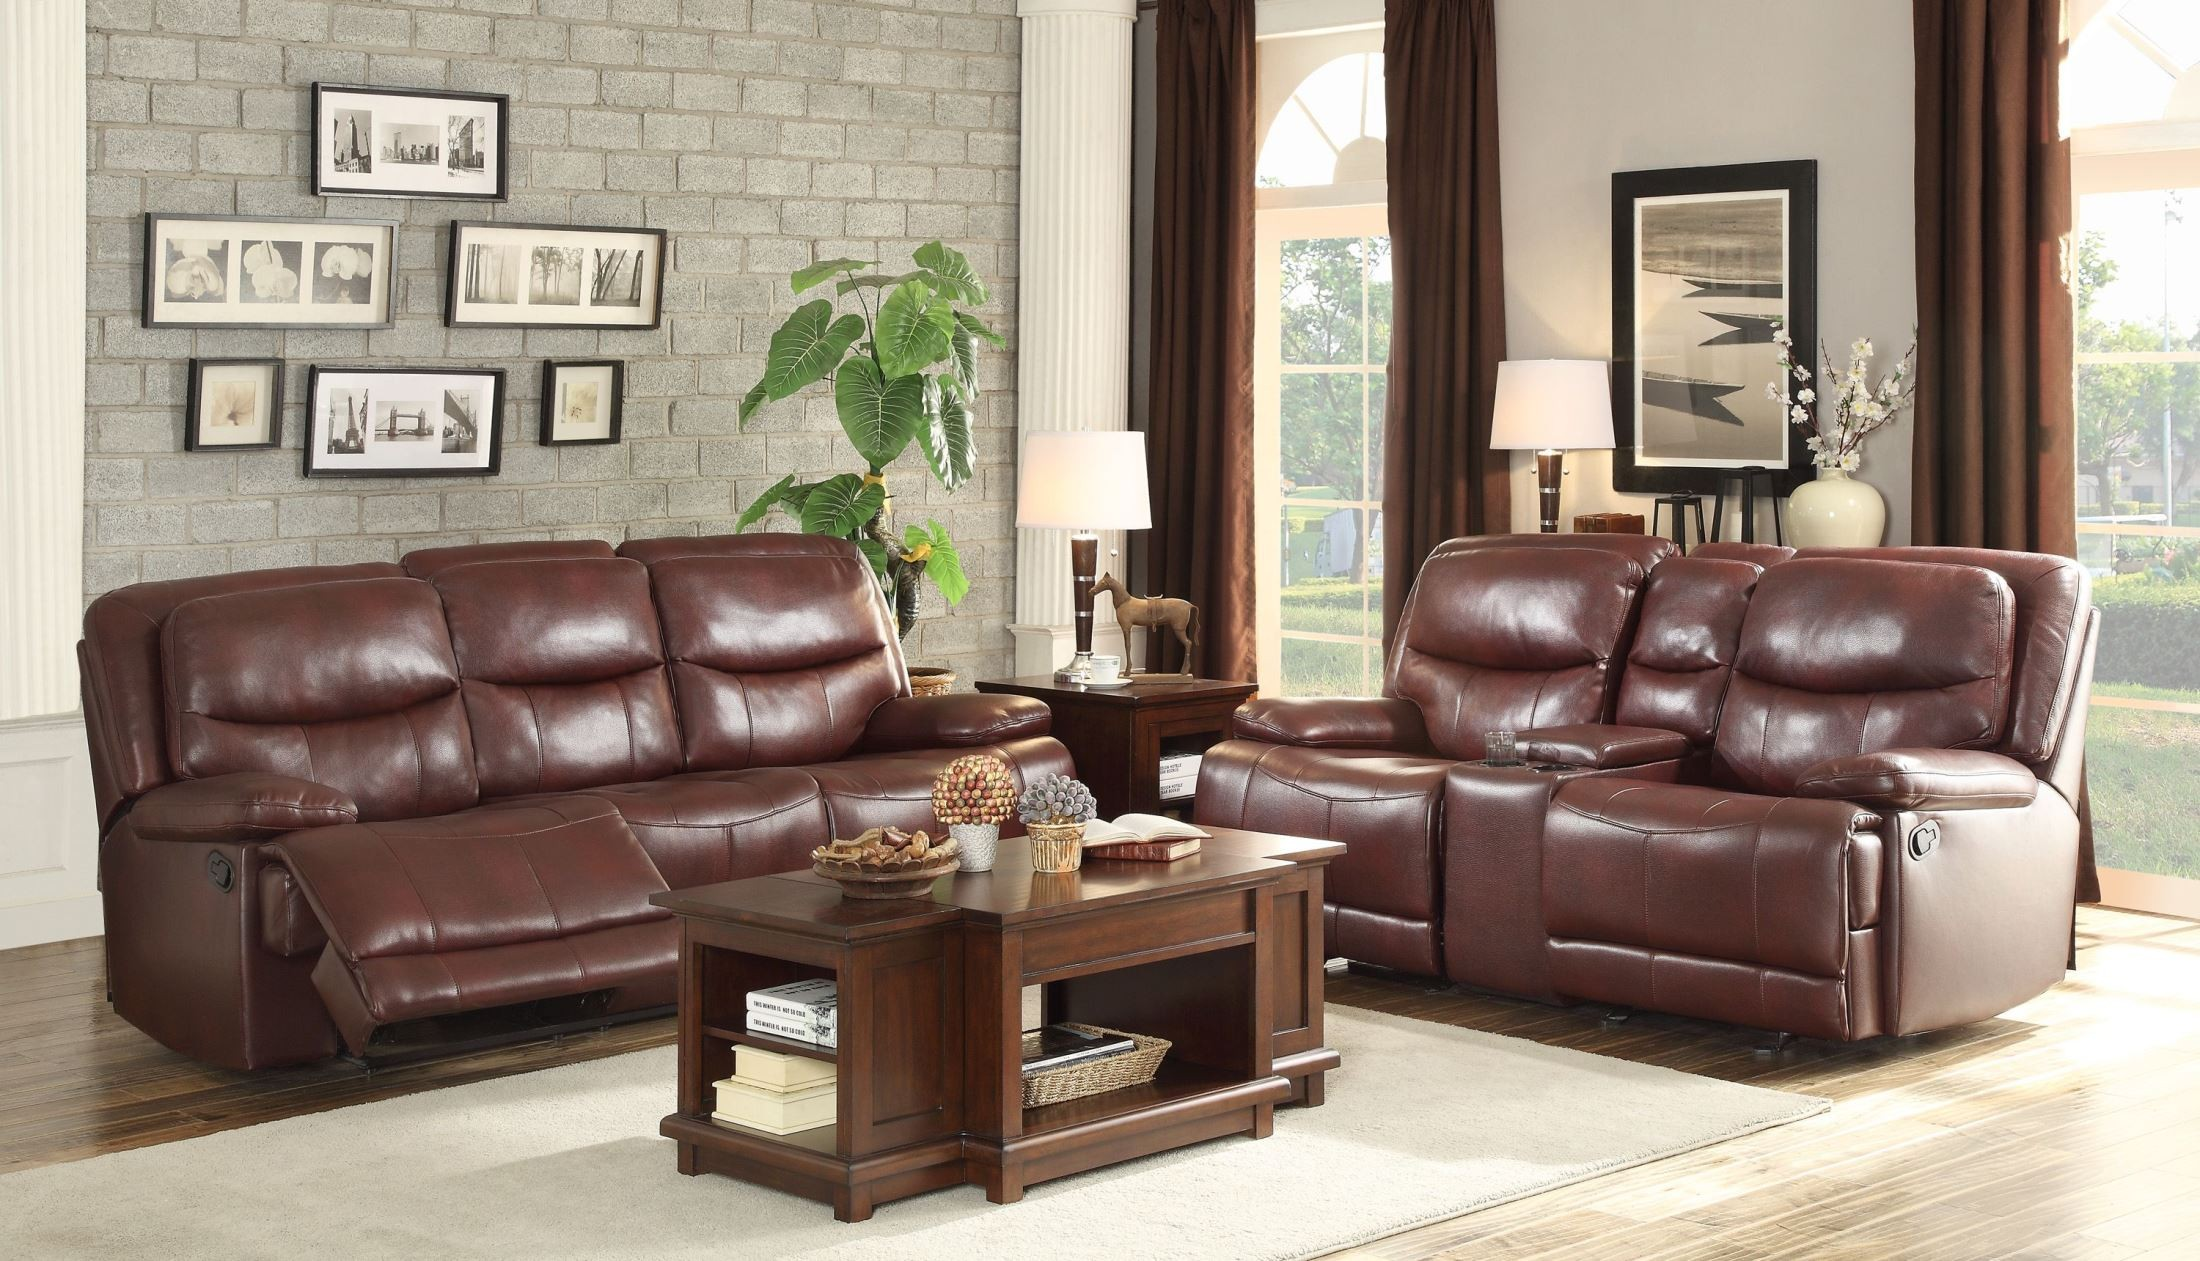 Risco burgundy double glider reclining console loveseat for Burgundy living room set